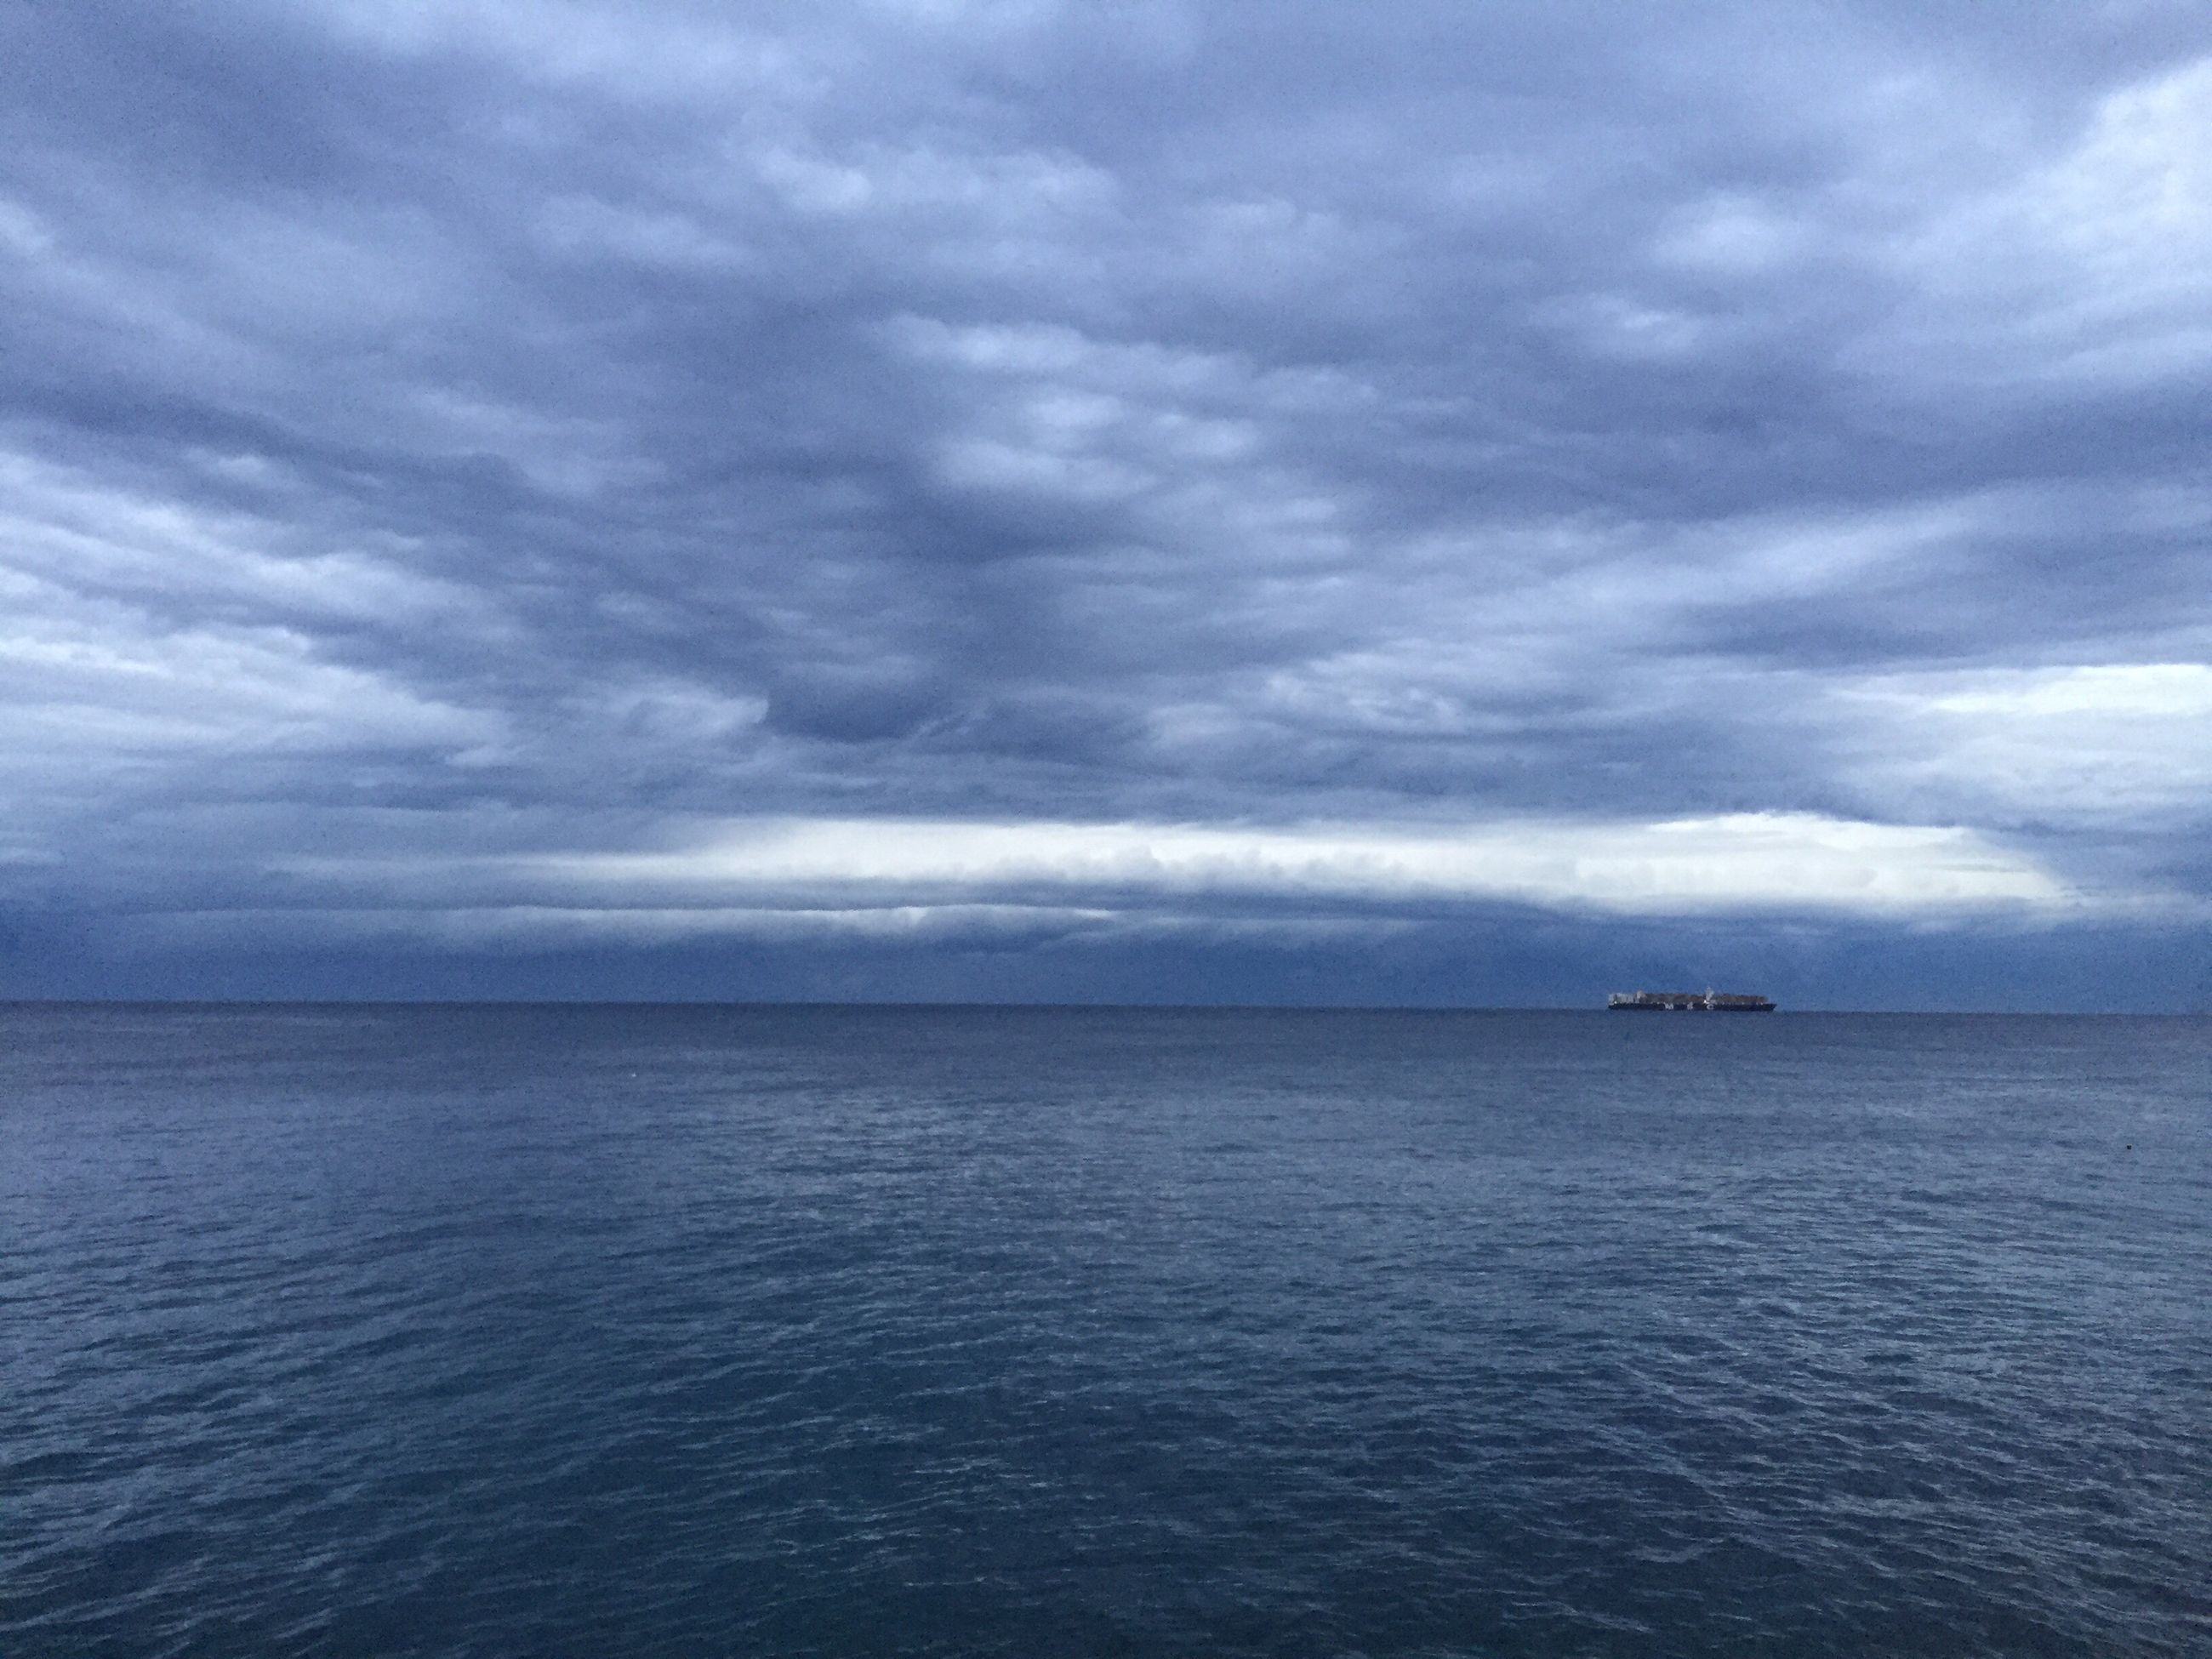 cloud - sky, sea, beauty in nature, sky, scenics, nature, horizon over water, tranquil scene, storm cloud, tranquility, overcast, weather, dramatic sky, outdoors, idyllic, no people, water, storm, landscape, thunderstorm, day